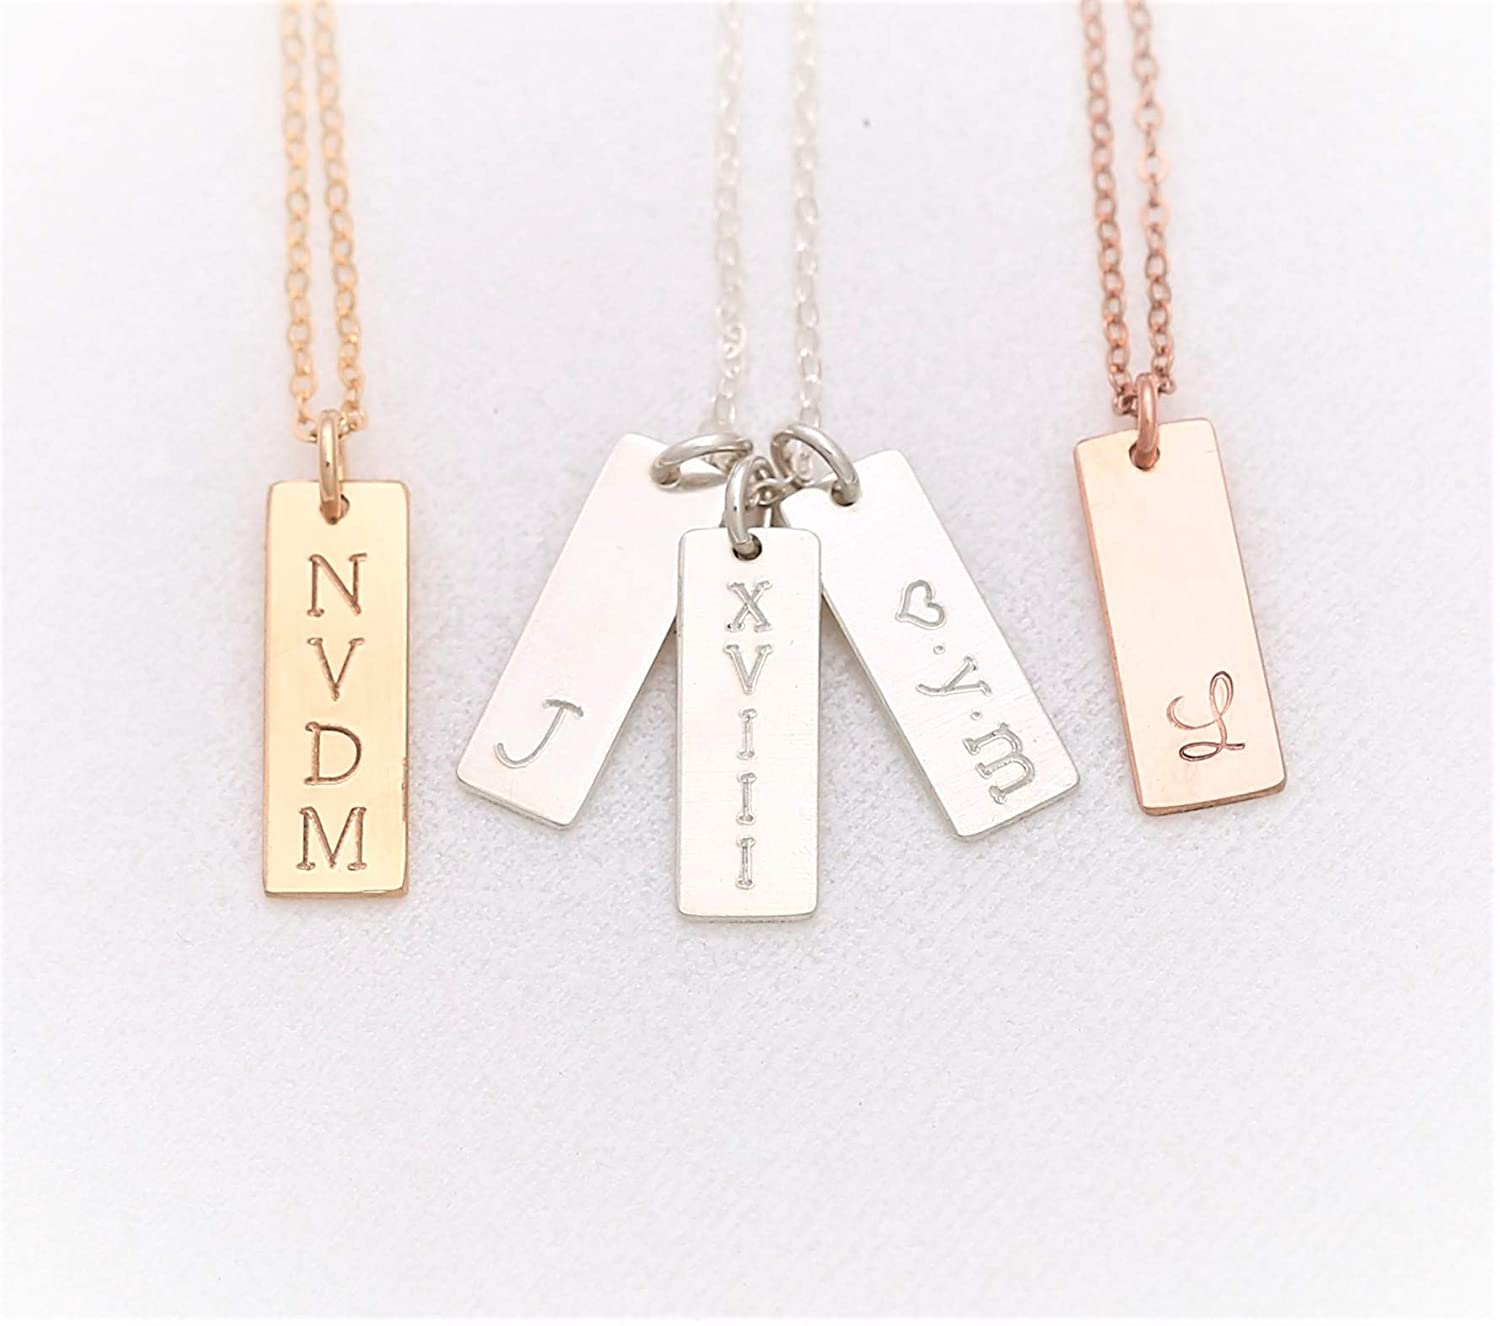 Personalized Jewelry Name Plate Necklace Personalized Necklace Name Necklace Custom Necklace Vertical Bar Necklace Engraved Necklace